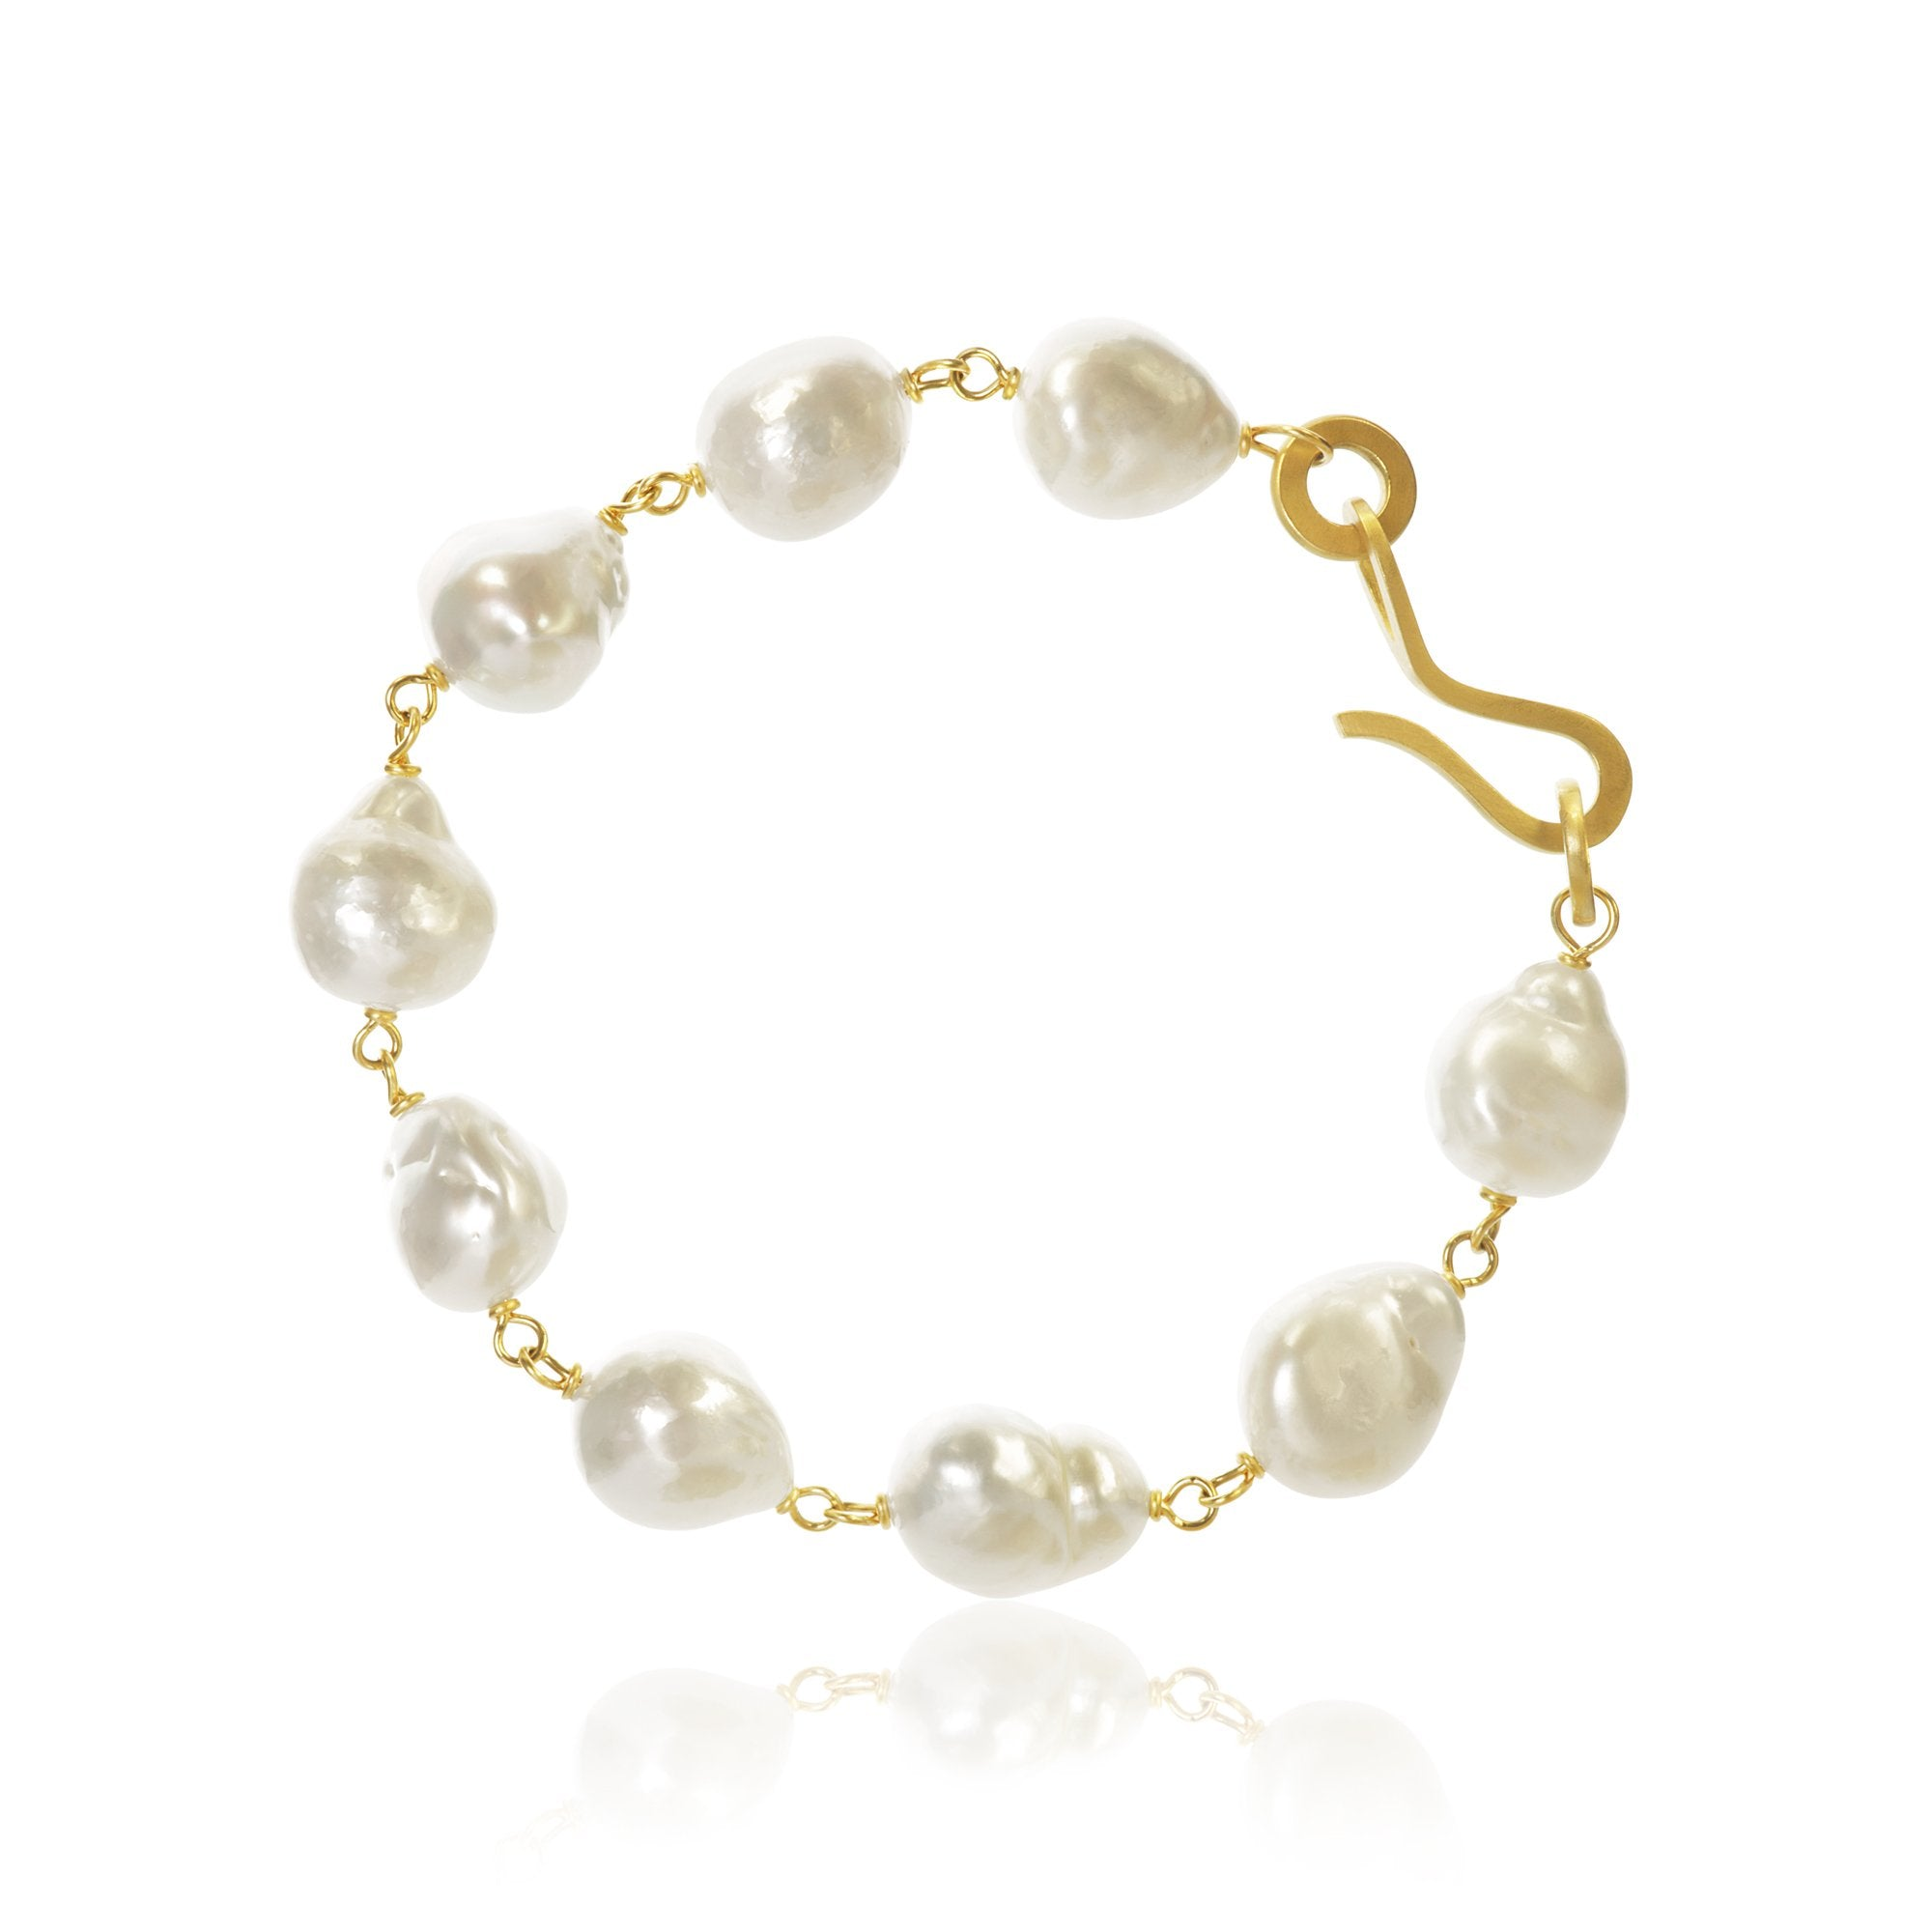 Grand Ocean pearl bracelet. With baroque South Sea pearls.